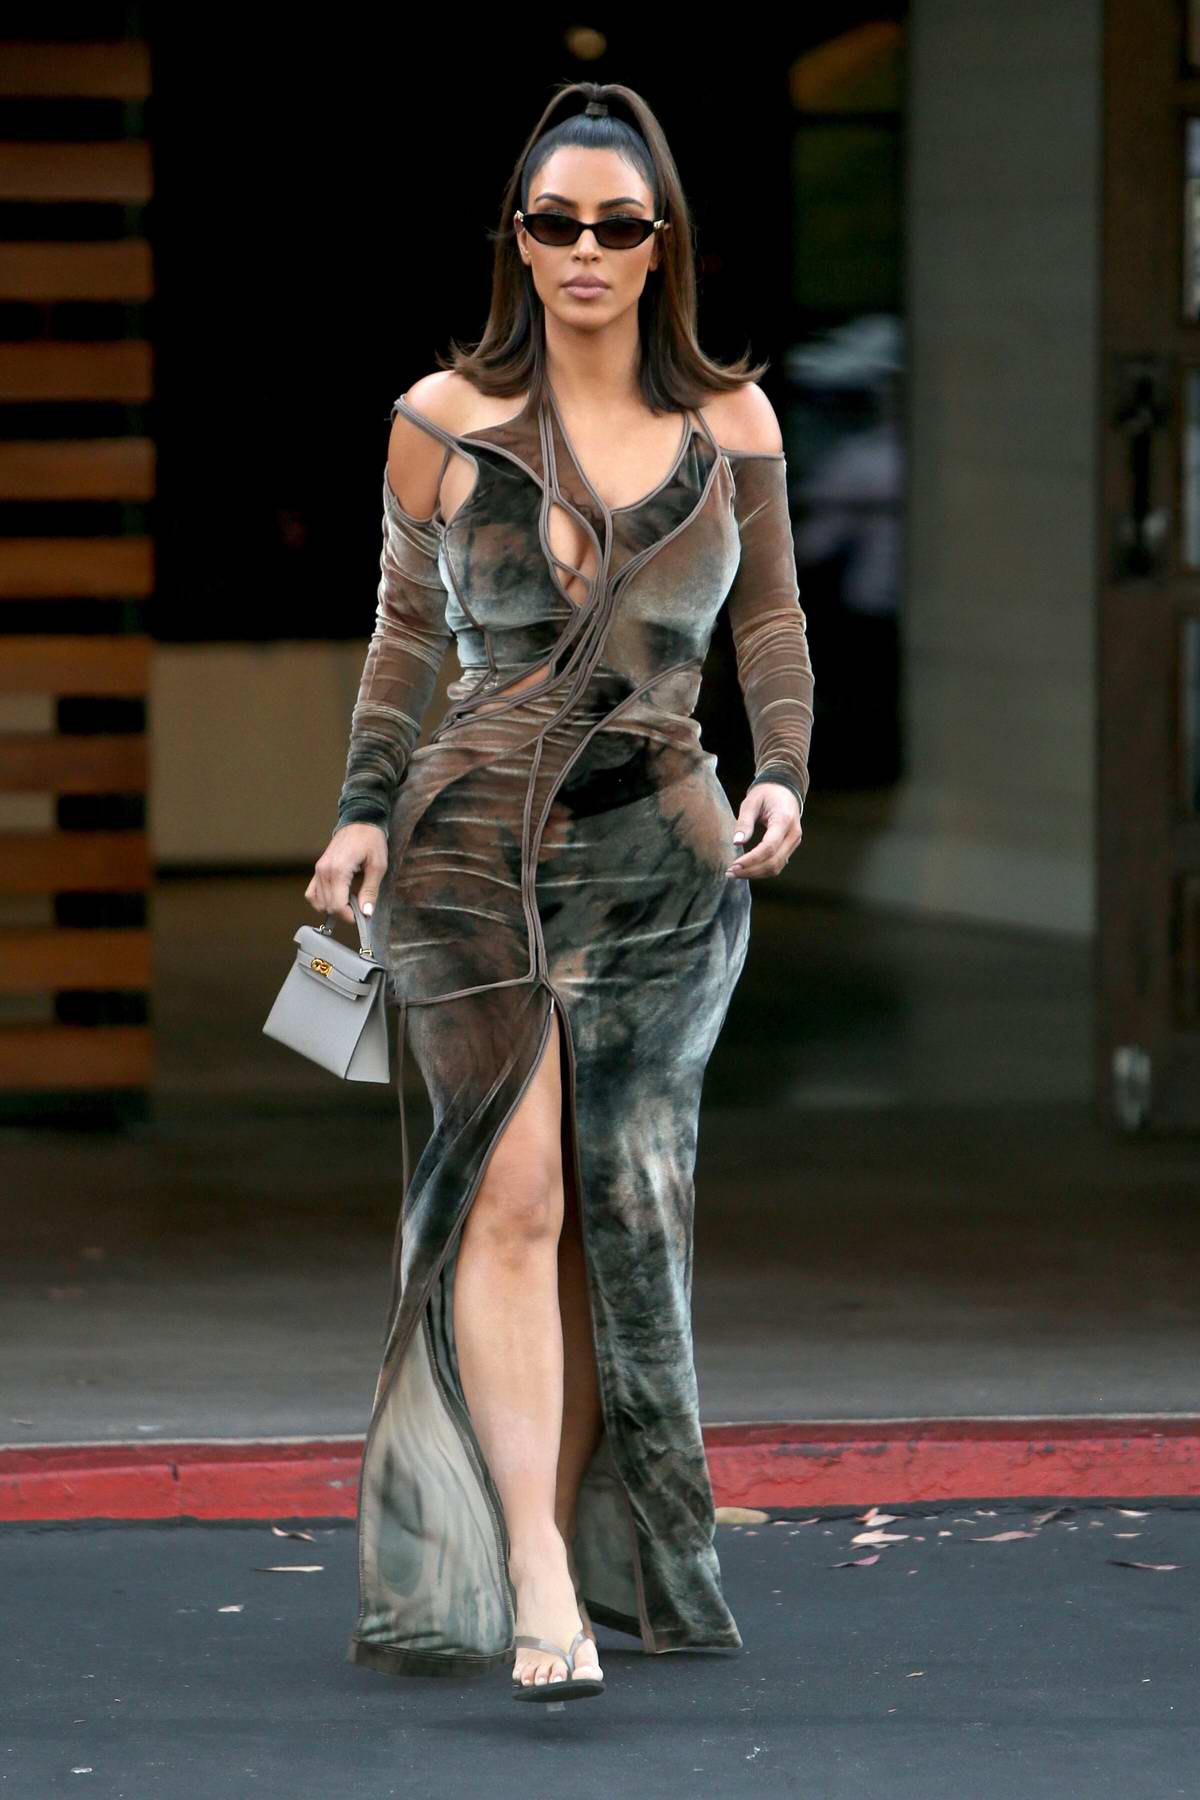 Kim Kardashian looks amazing in a form-fitting dress while leaving La Plata Taqueria & Cantina in Agoura Hills, California